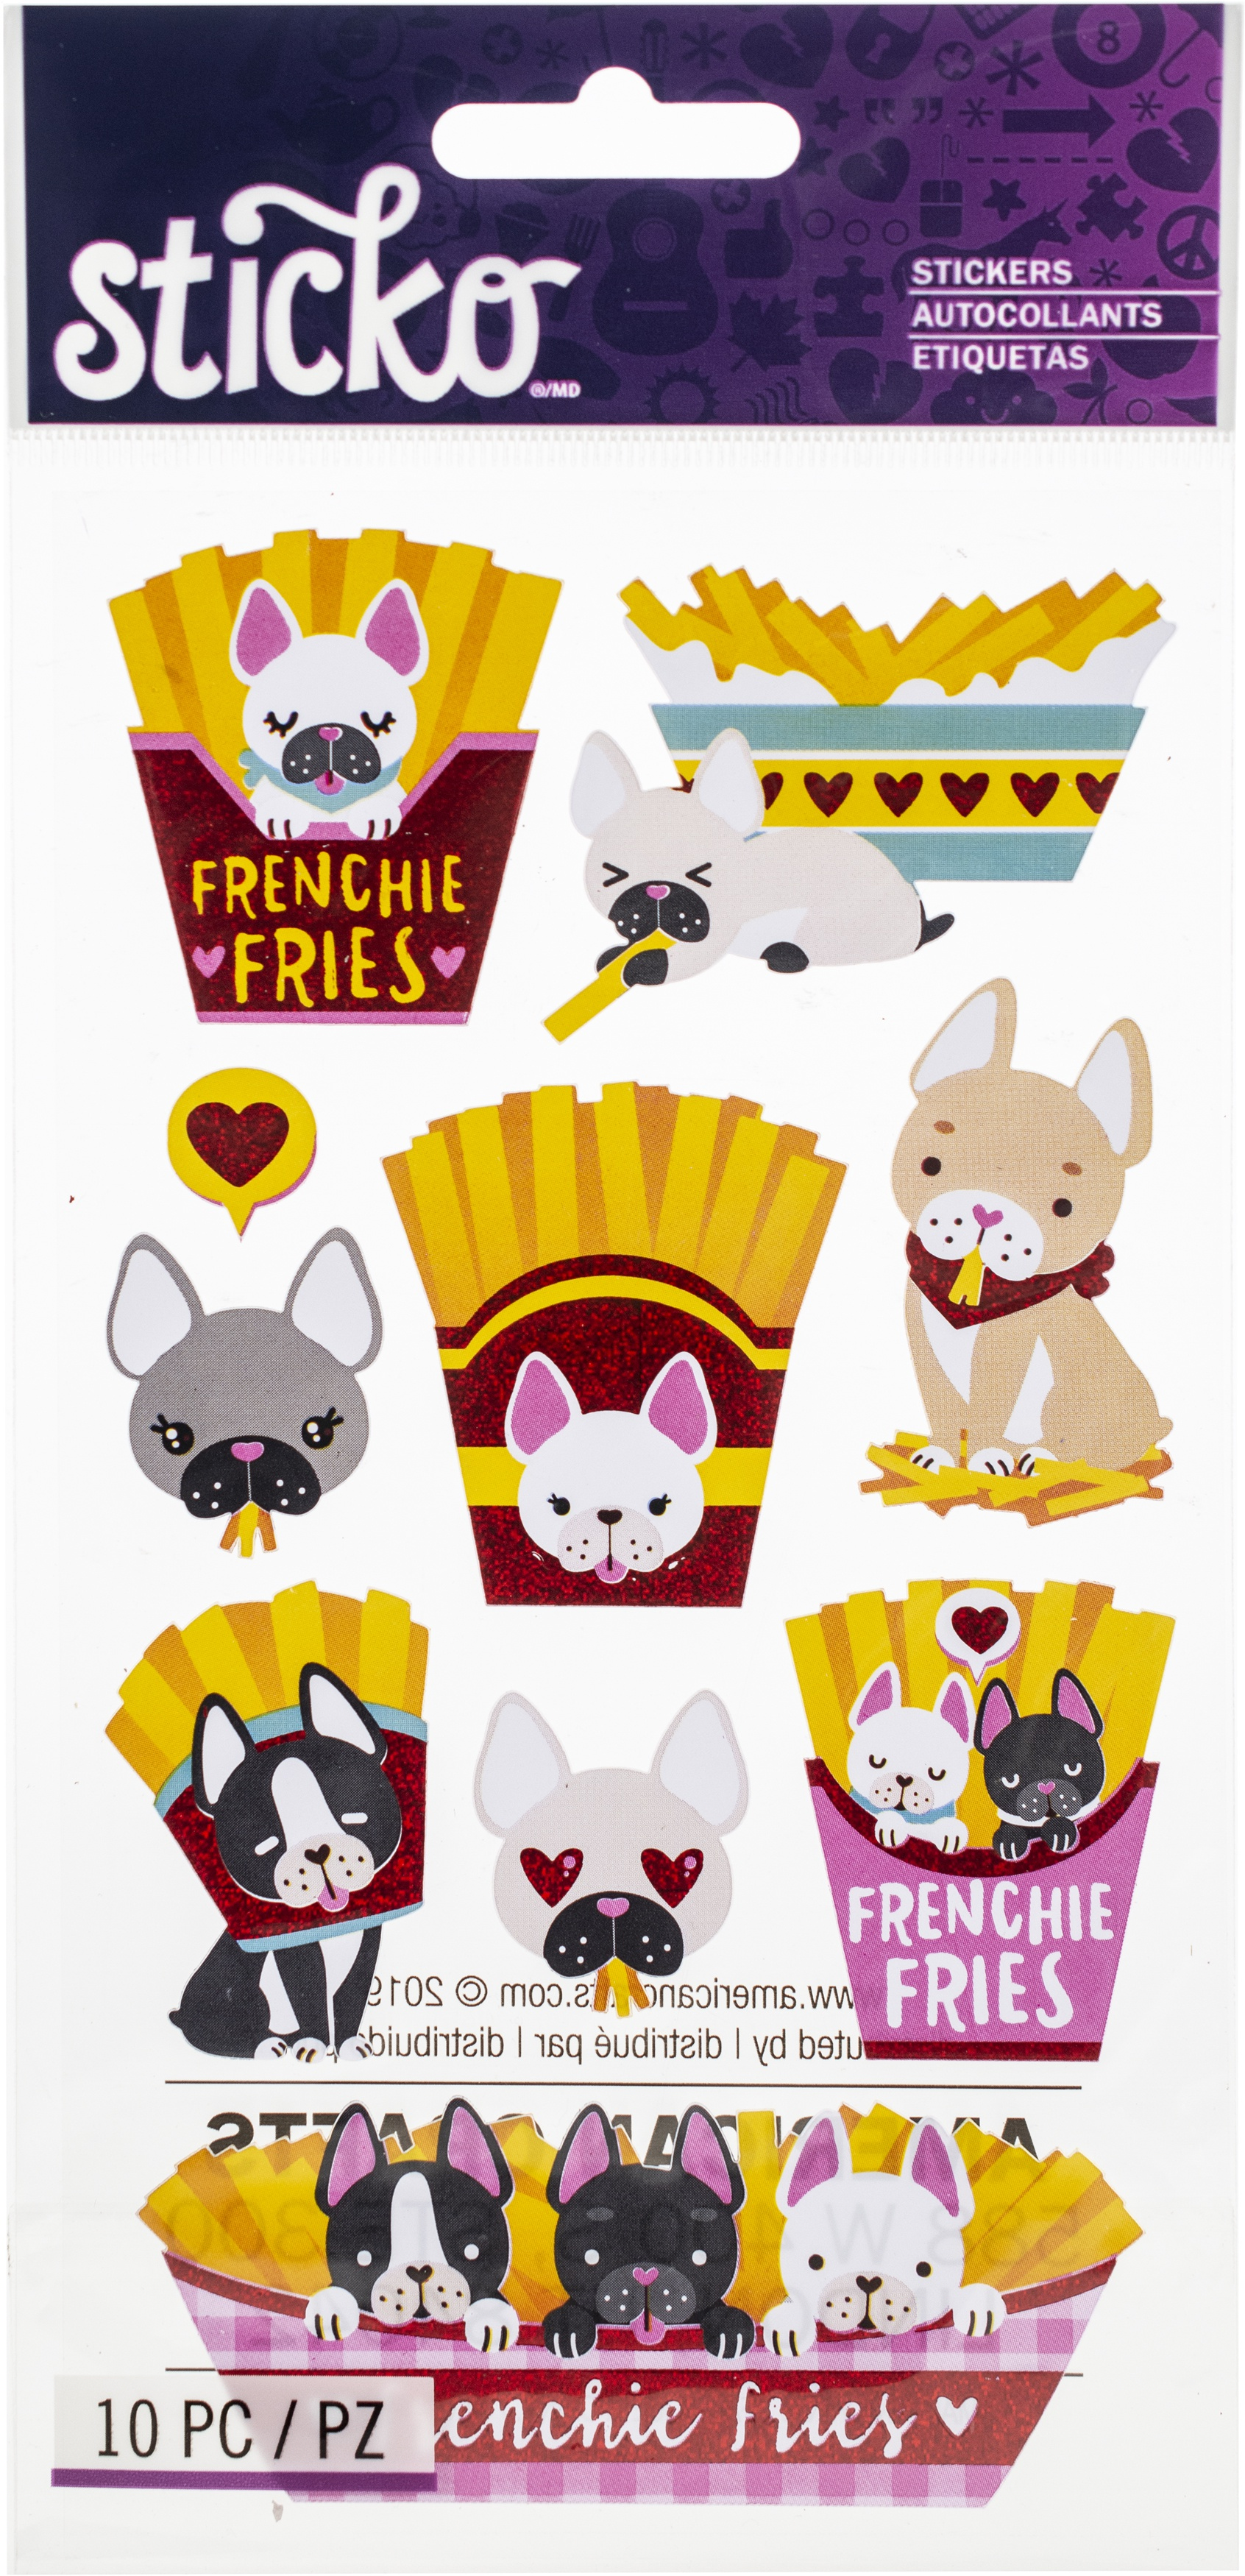 Sticko Classic Stickers-Frenchie Fries